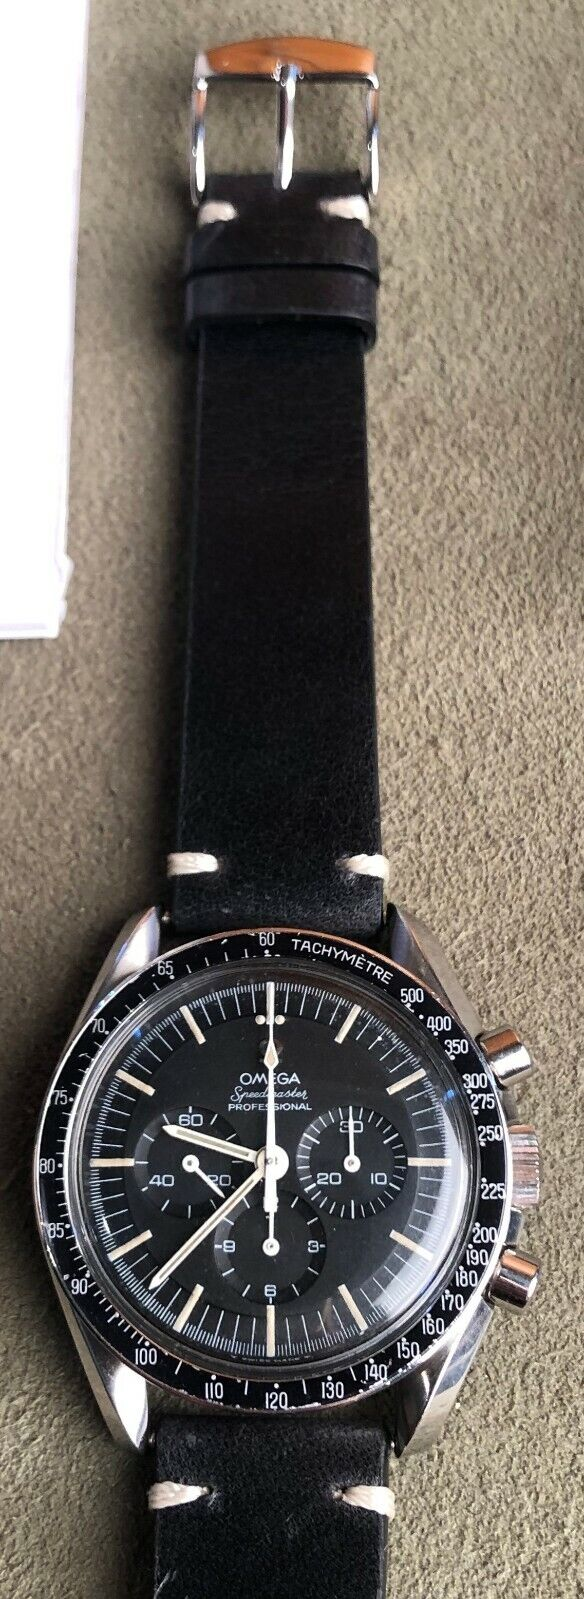 Vintage Omega Speedmaster with 321 Movement PRE-MOON All original circa 1960s! - watch picture 1